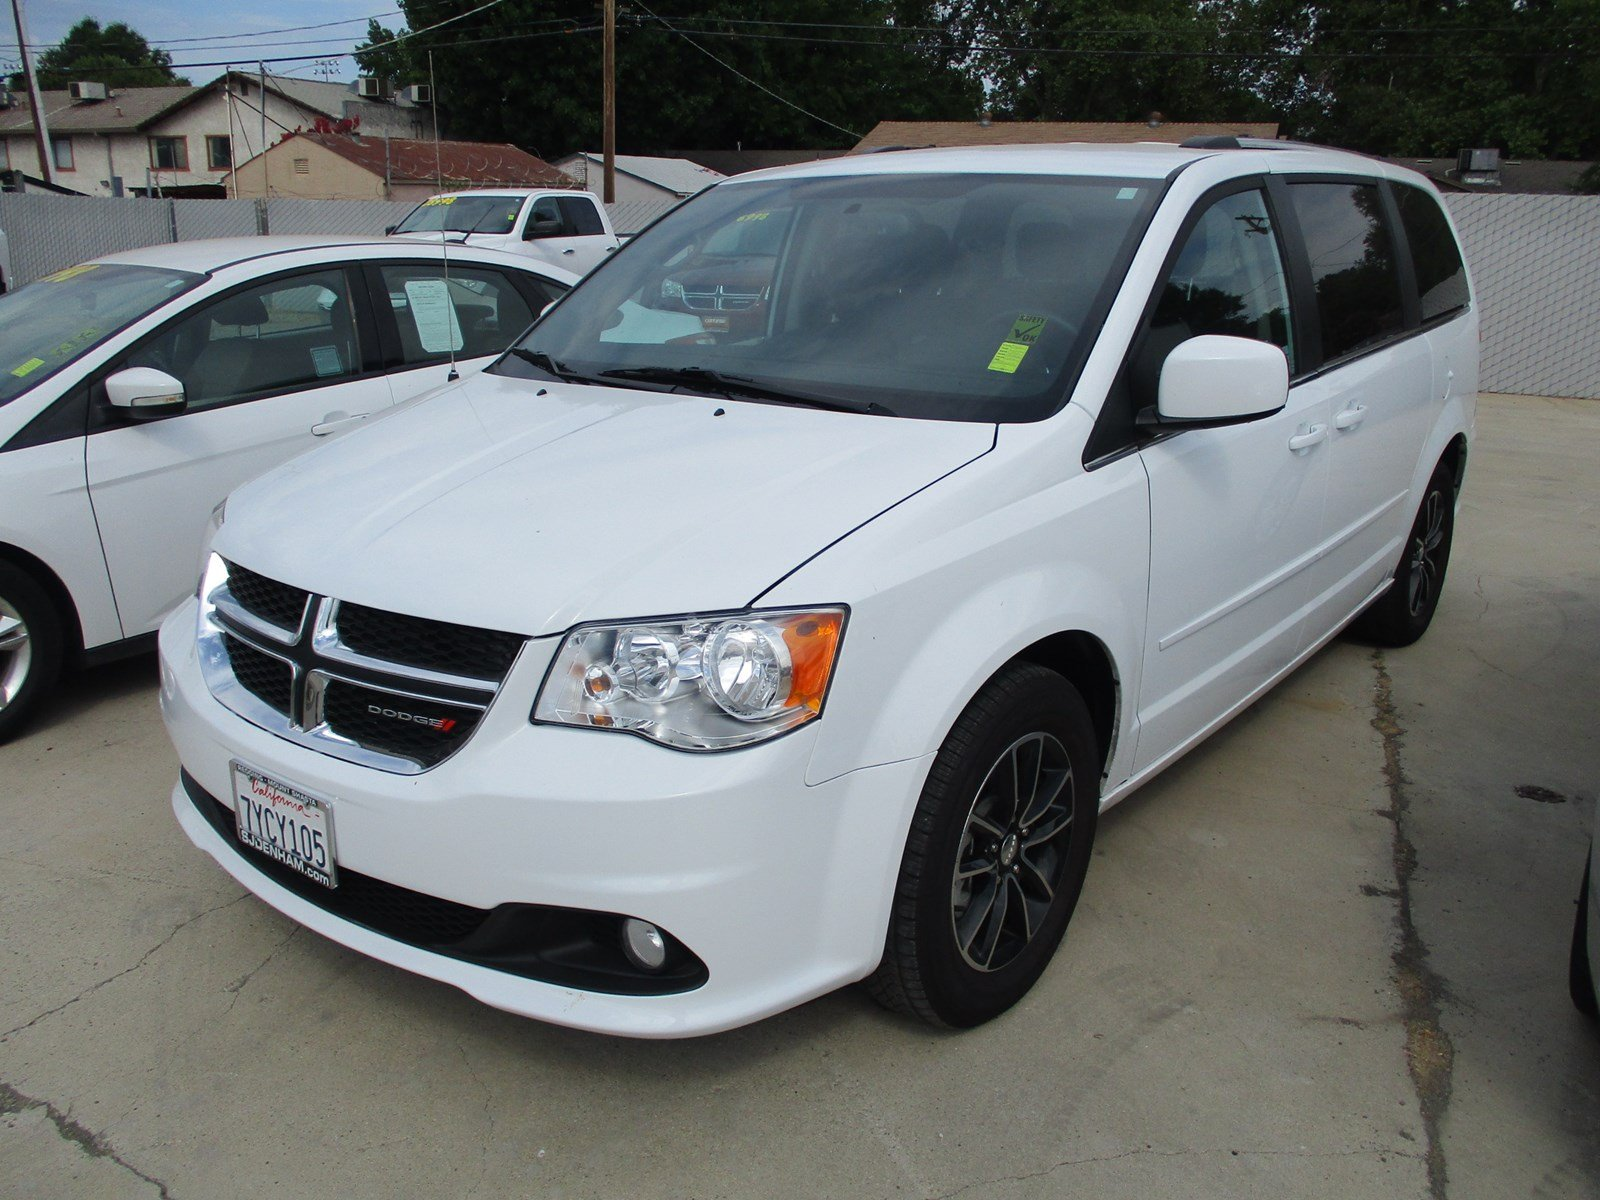 certified pre owned 2017 dodge grand caravan sxt mini van. Black Bedroom Furniture Sets. Home Design Ideas